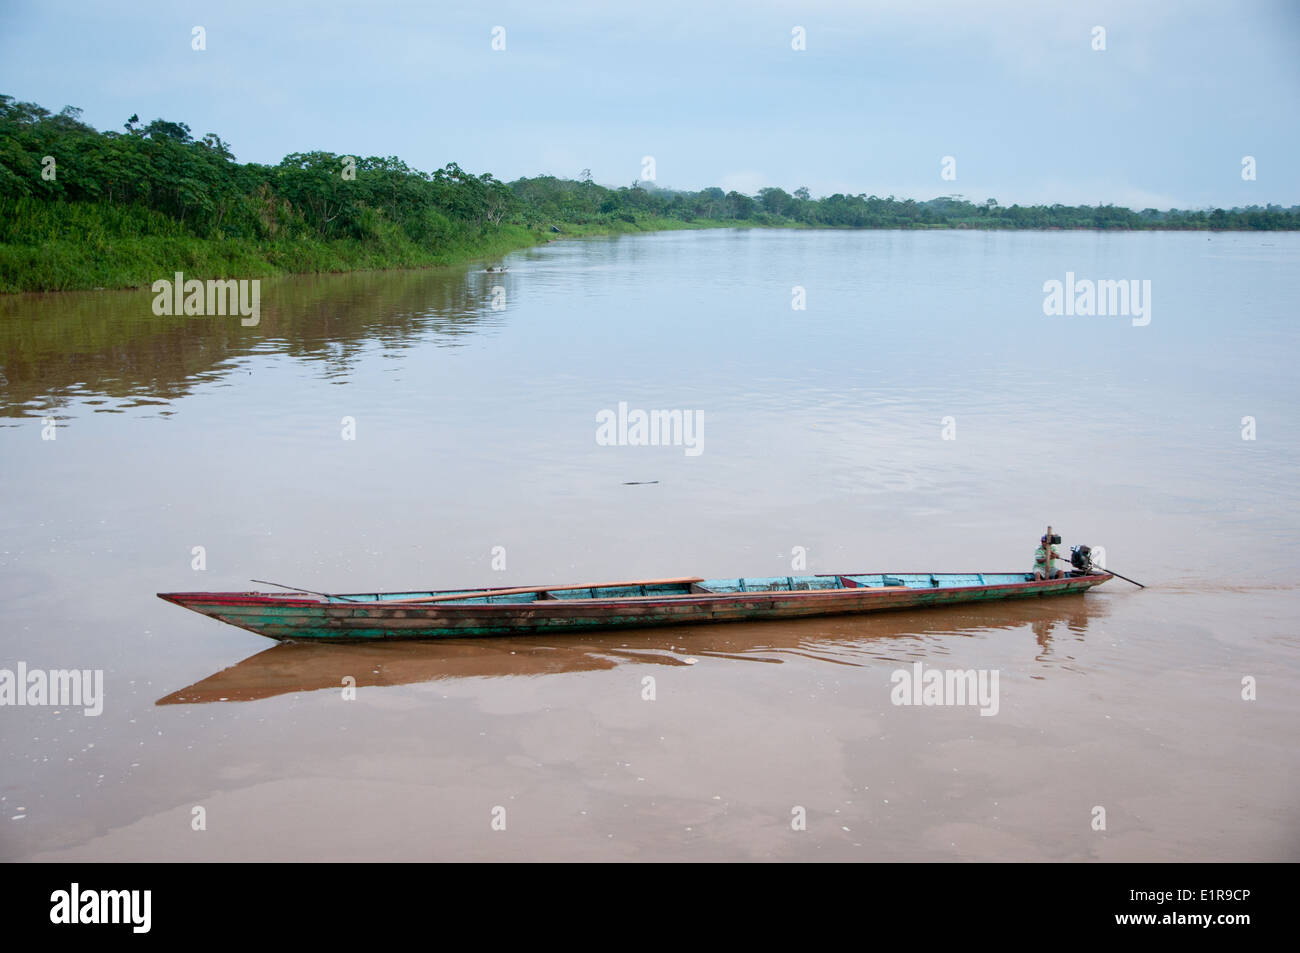 Large Canoe with outboard motor on the Peruvian Amazon - Stock Image